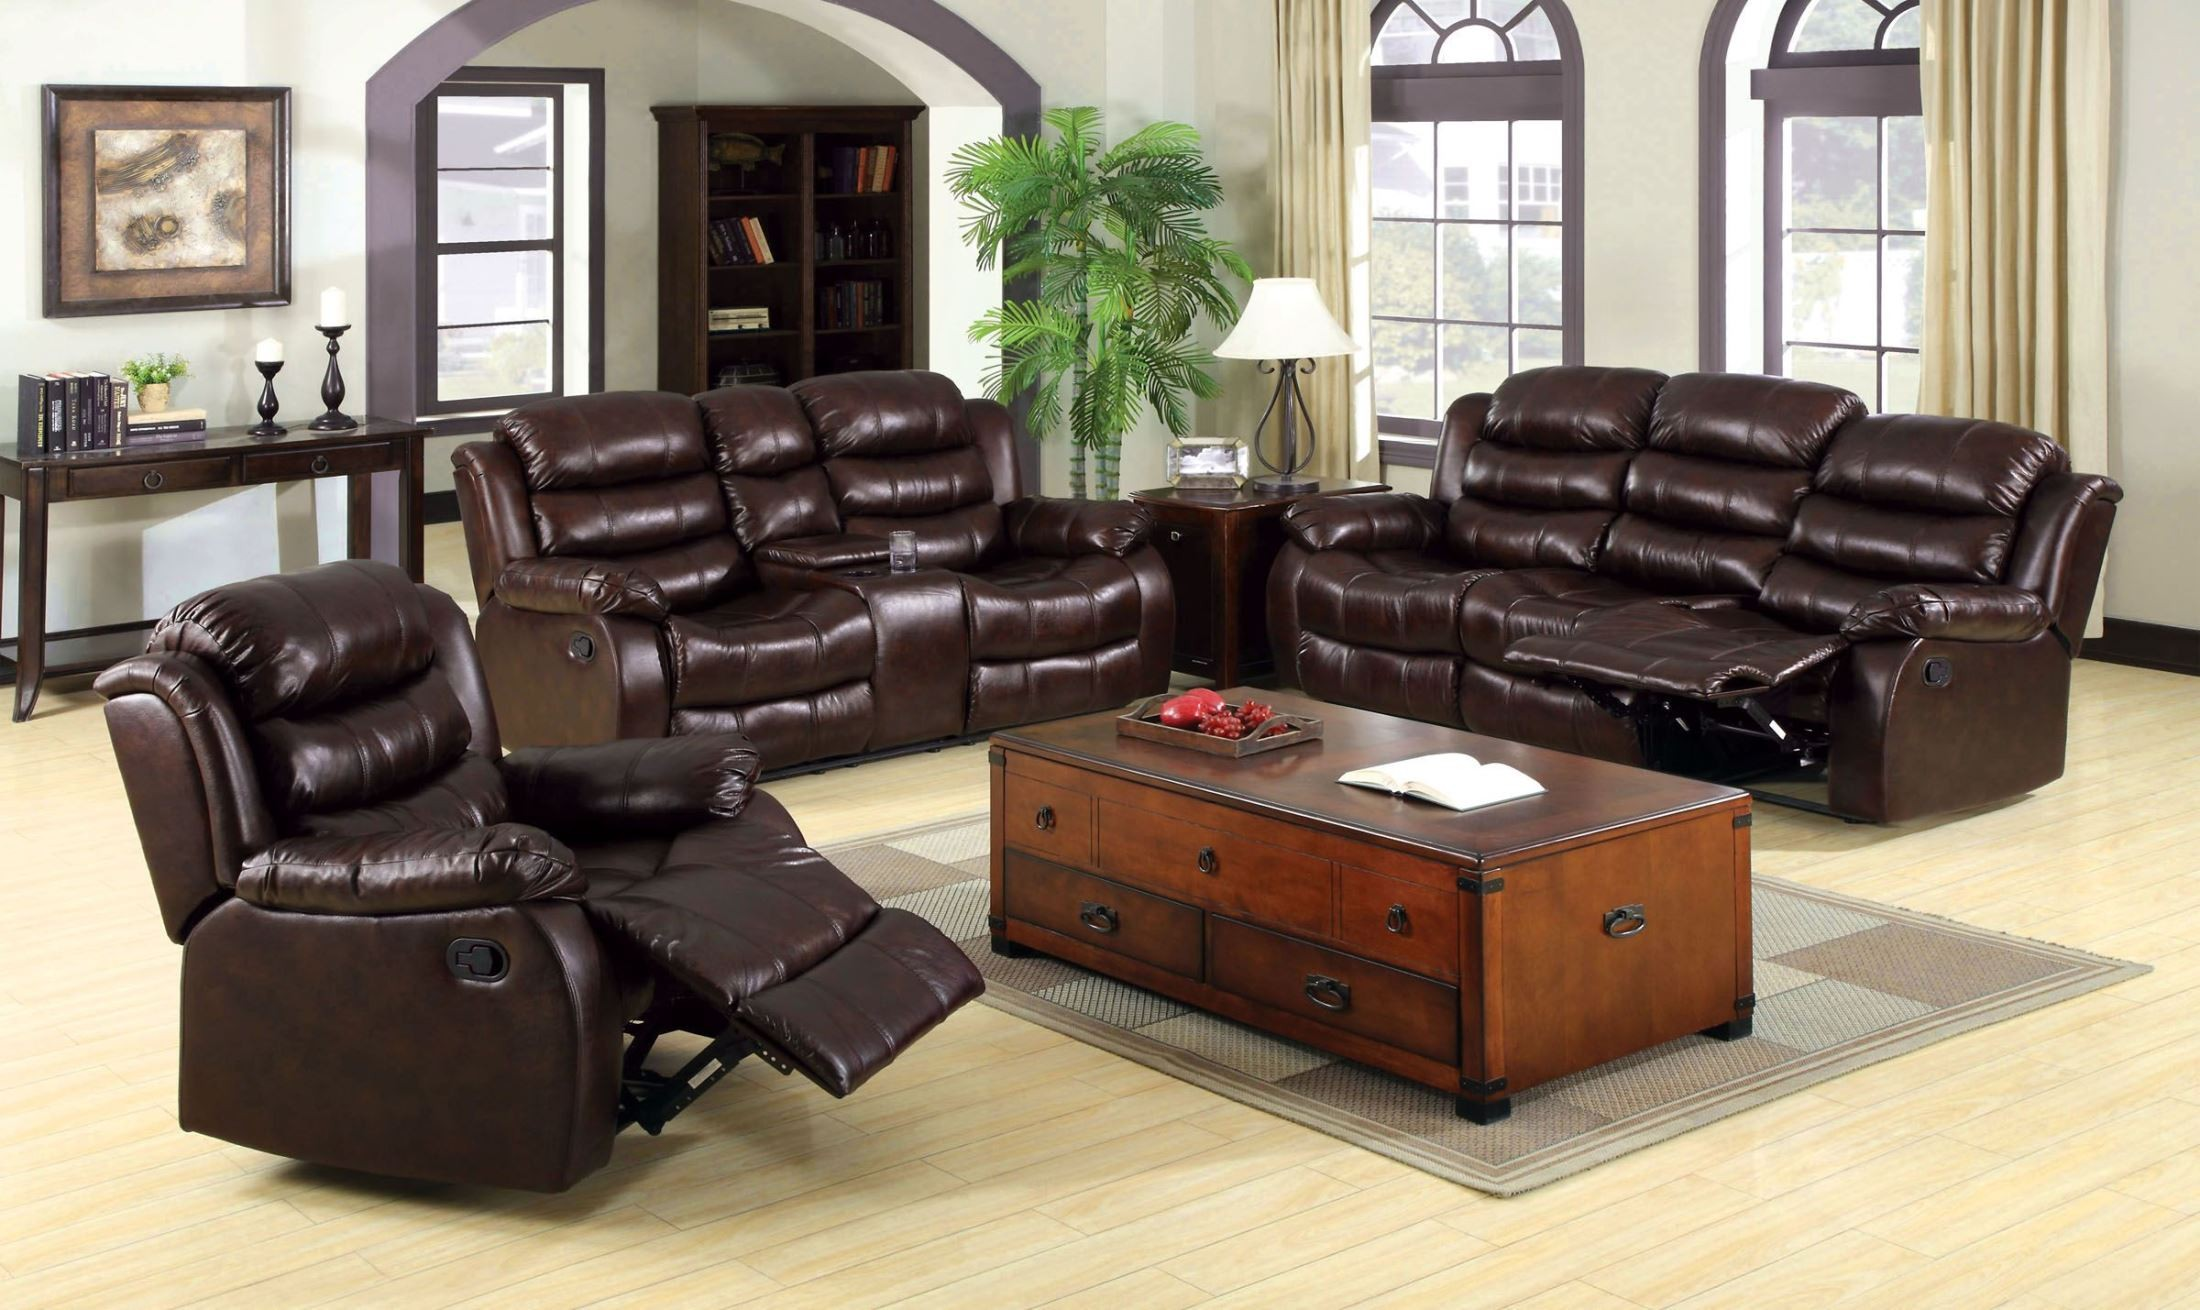 berkshire rustic brown reclining living room set cm6551 s furniture of america. Black Bedroom Furniture Sets. Home Design Ideas